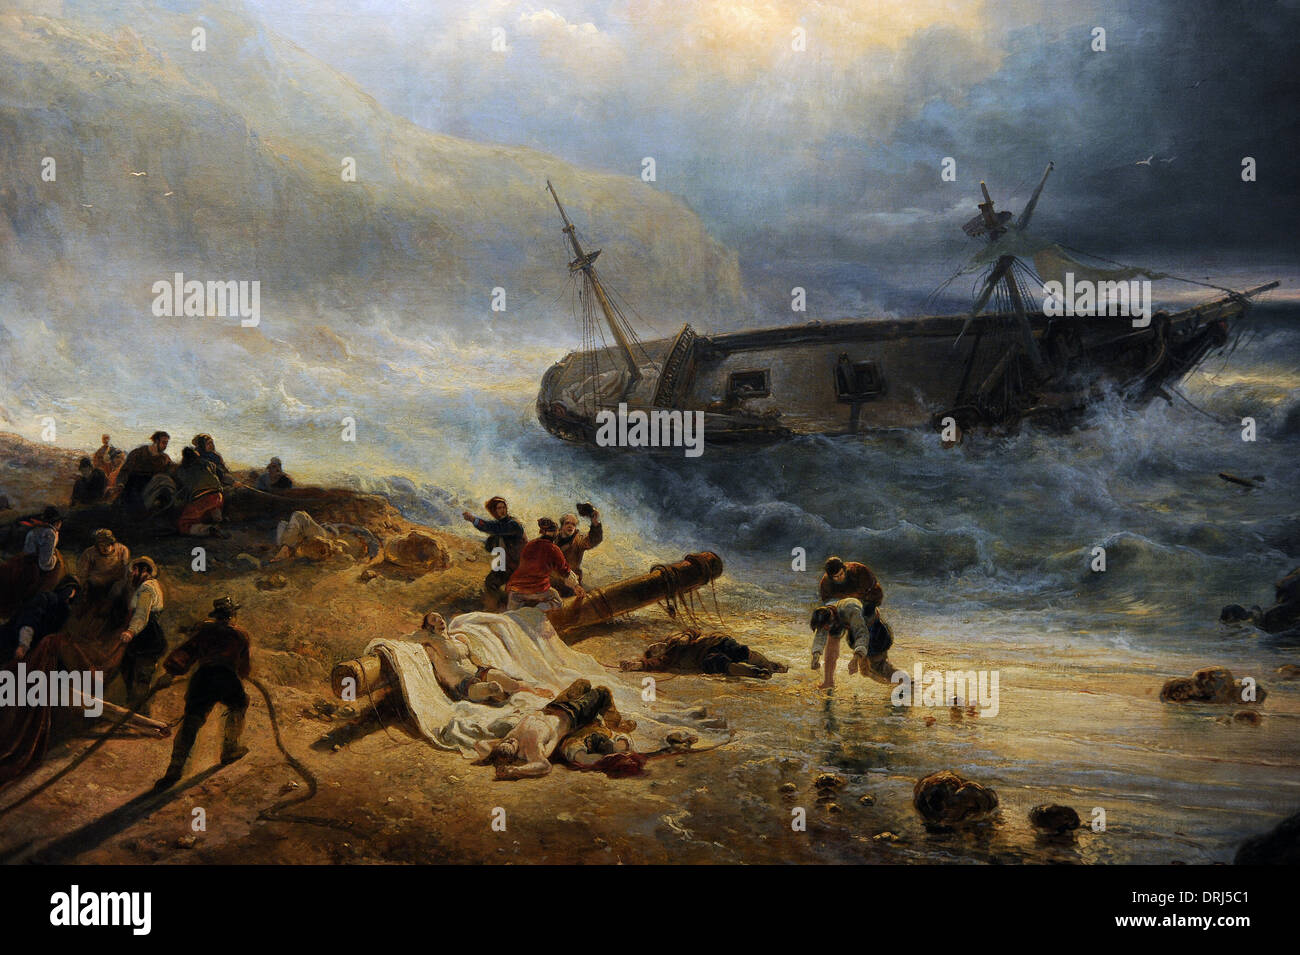 Wijnand Nuijen (1813-1839). Dutch painter. Shipwreck off a Rocky Coast, c.1837. Detail. Rijksmuseum. Amsterdam. Holland. - Stock Image